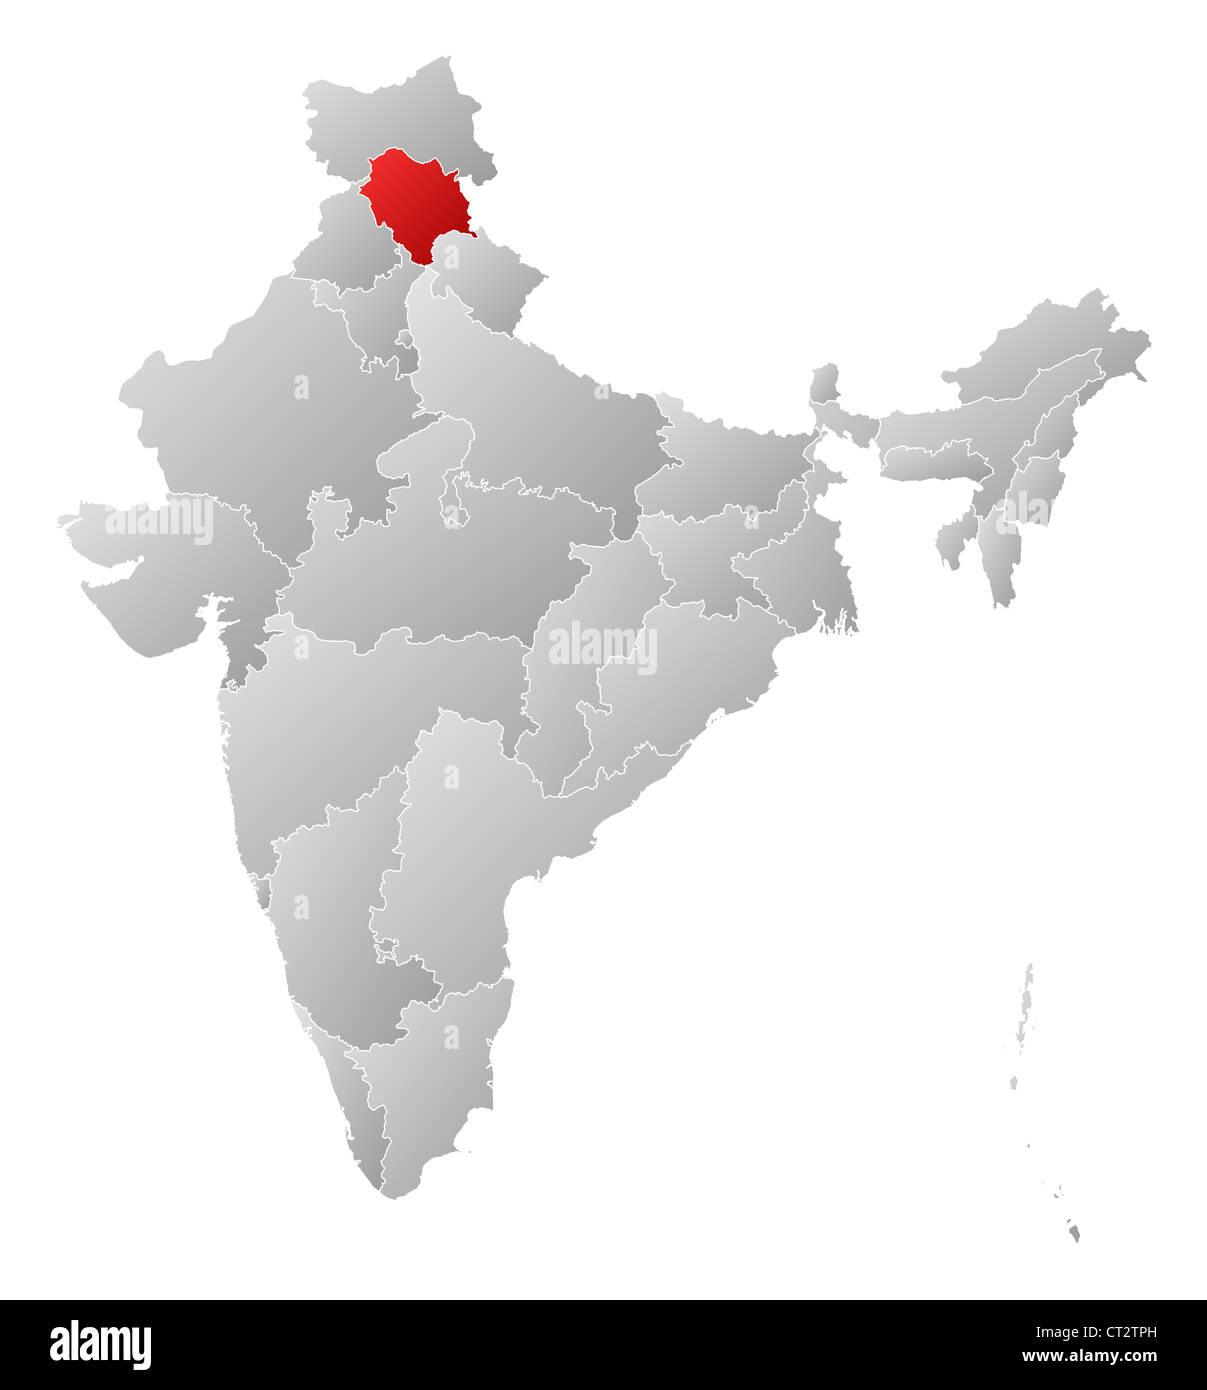 himachal pradesh in india political map Political Map Of India With The Several States Where Himachal himachal pradesh in india political map